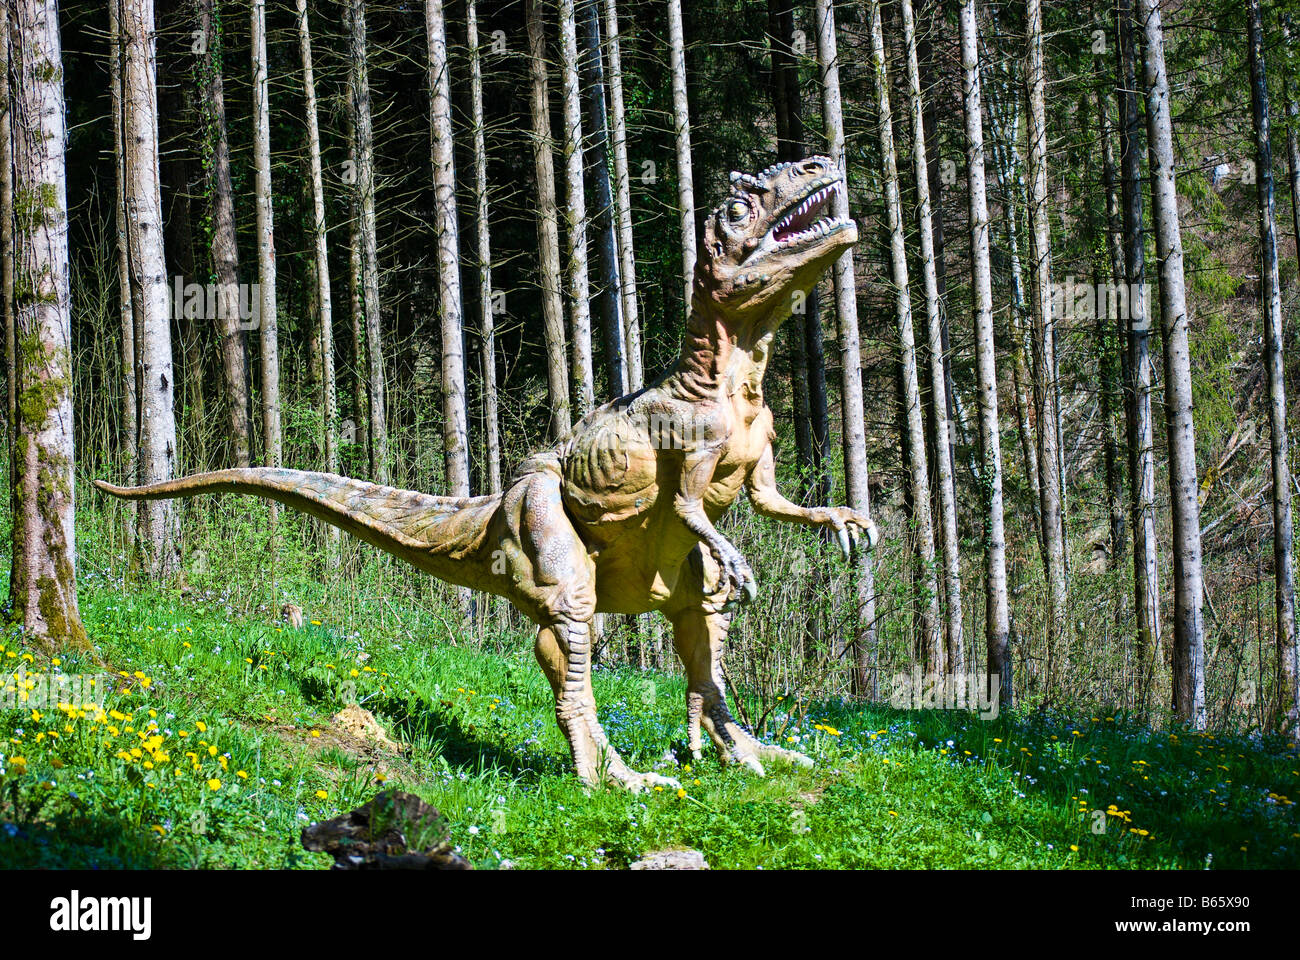 Life-sized model of a velociraptor,  at Dino Zoo, Charbonnières les Sapins, France. Charles W. Lupica - Stock Image